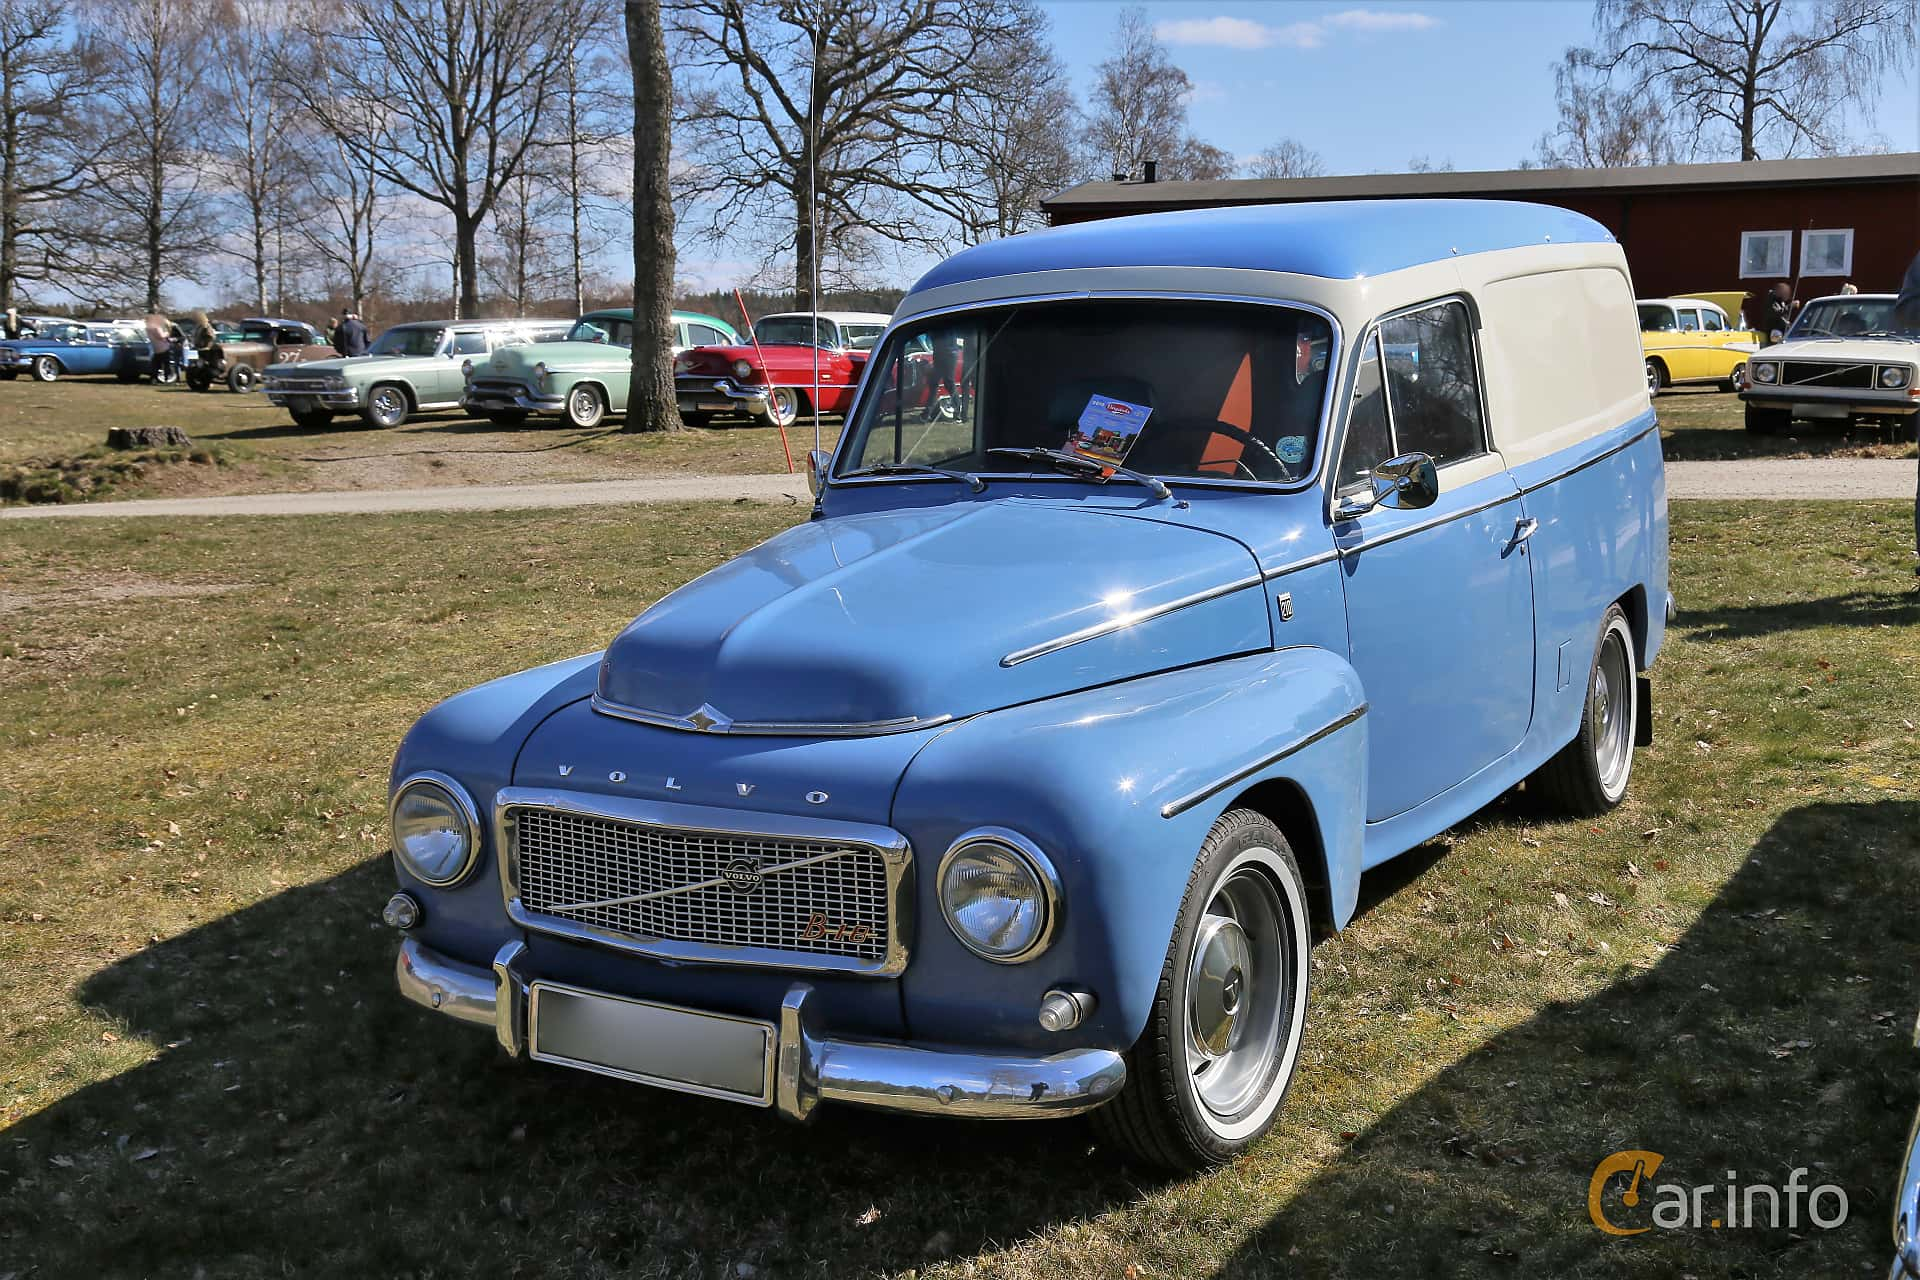 Volvo P210 Panel Van 1.8 Manual, 75hp, 1968 at Uddevalla Veteranbilsmarknad Backamo, Ljungsk 2019